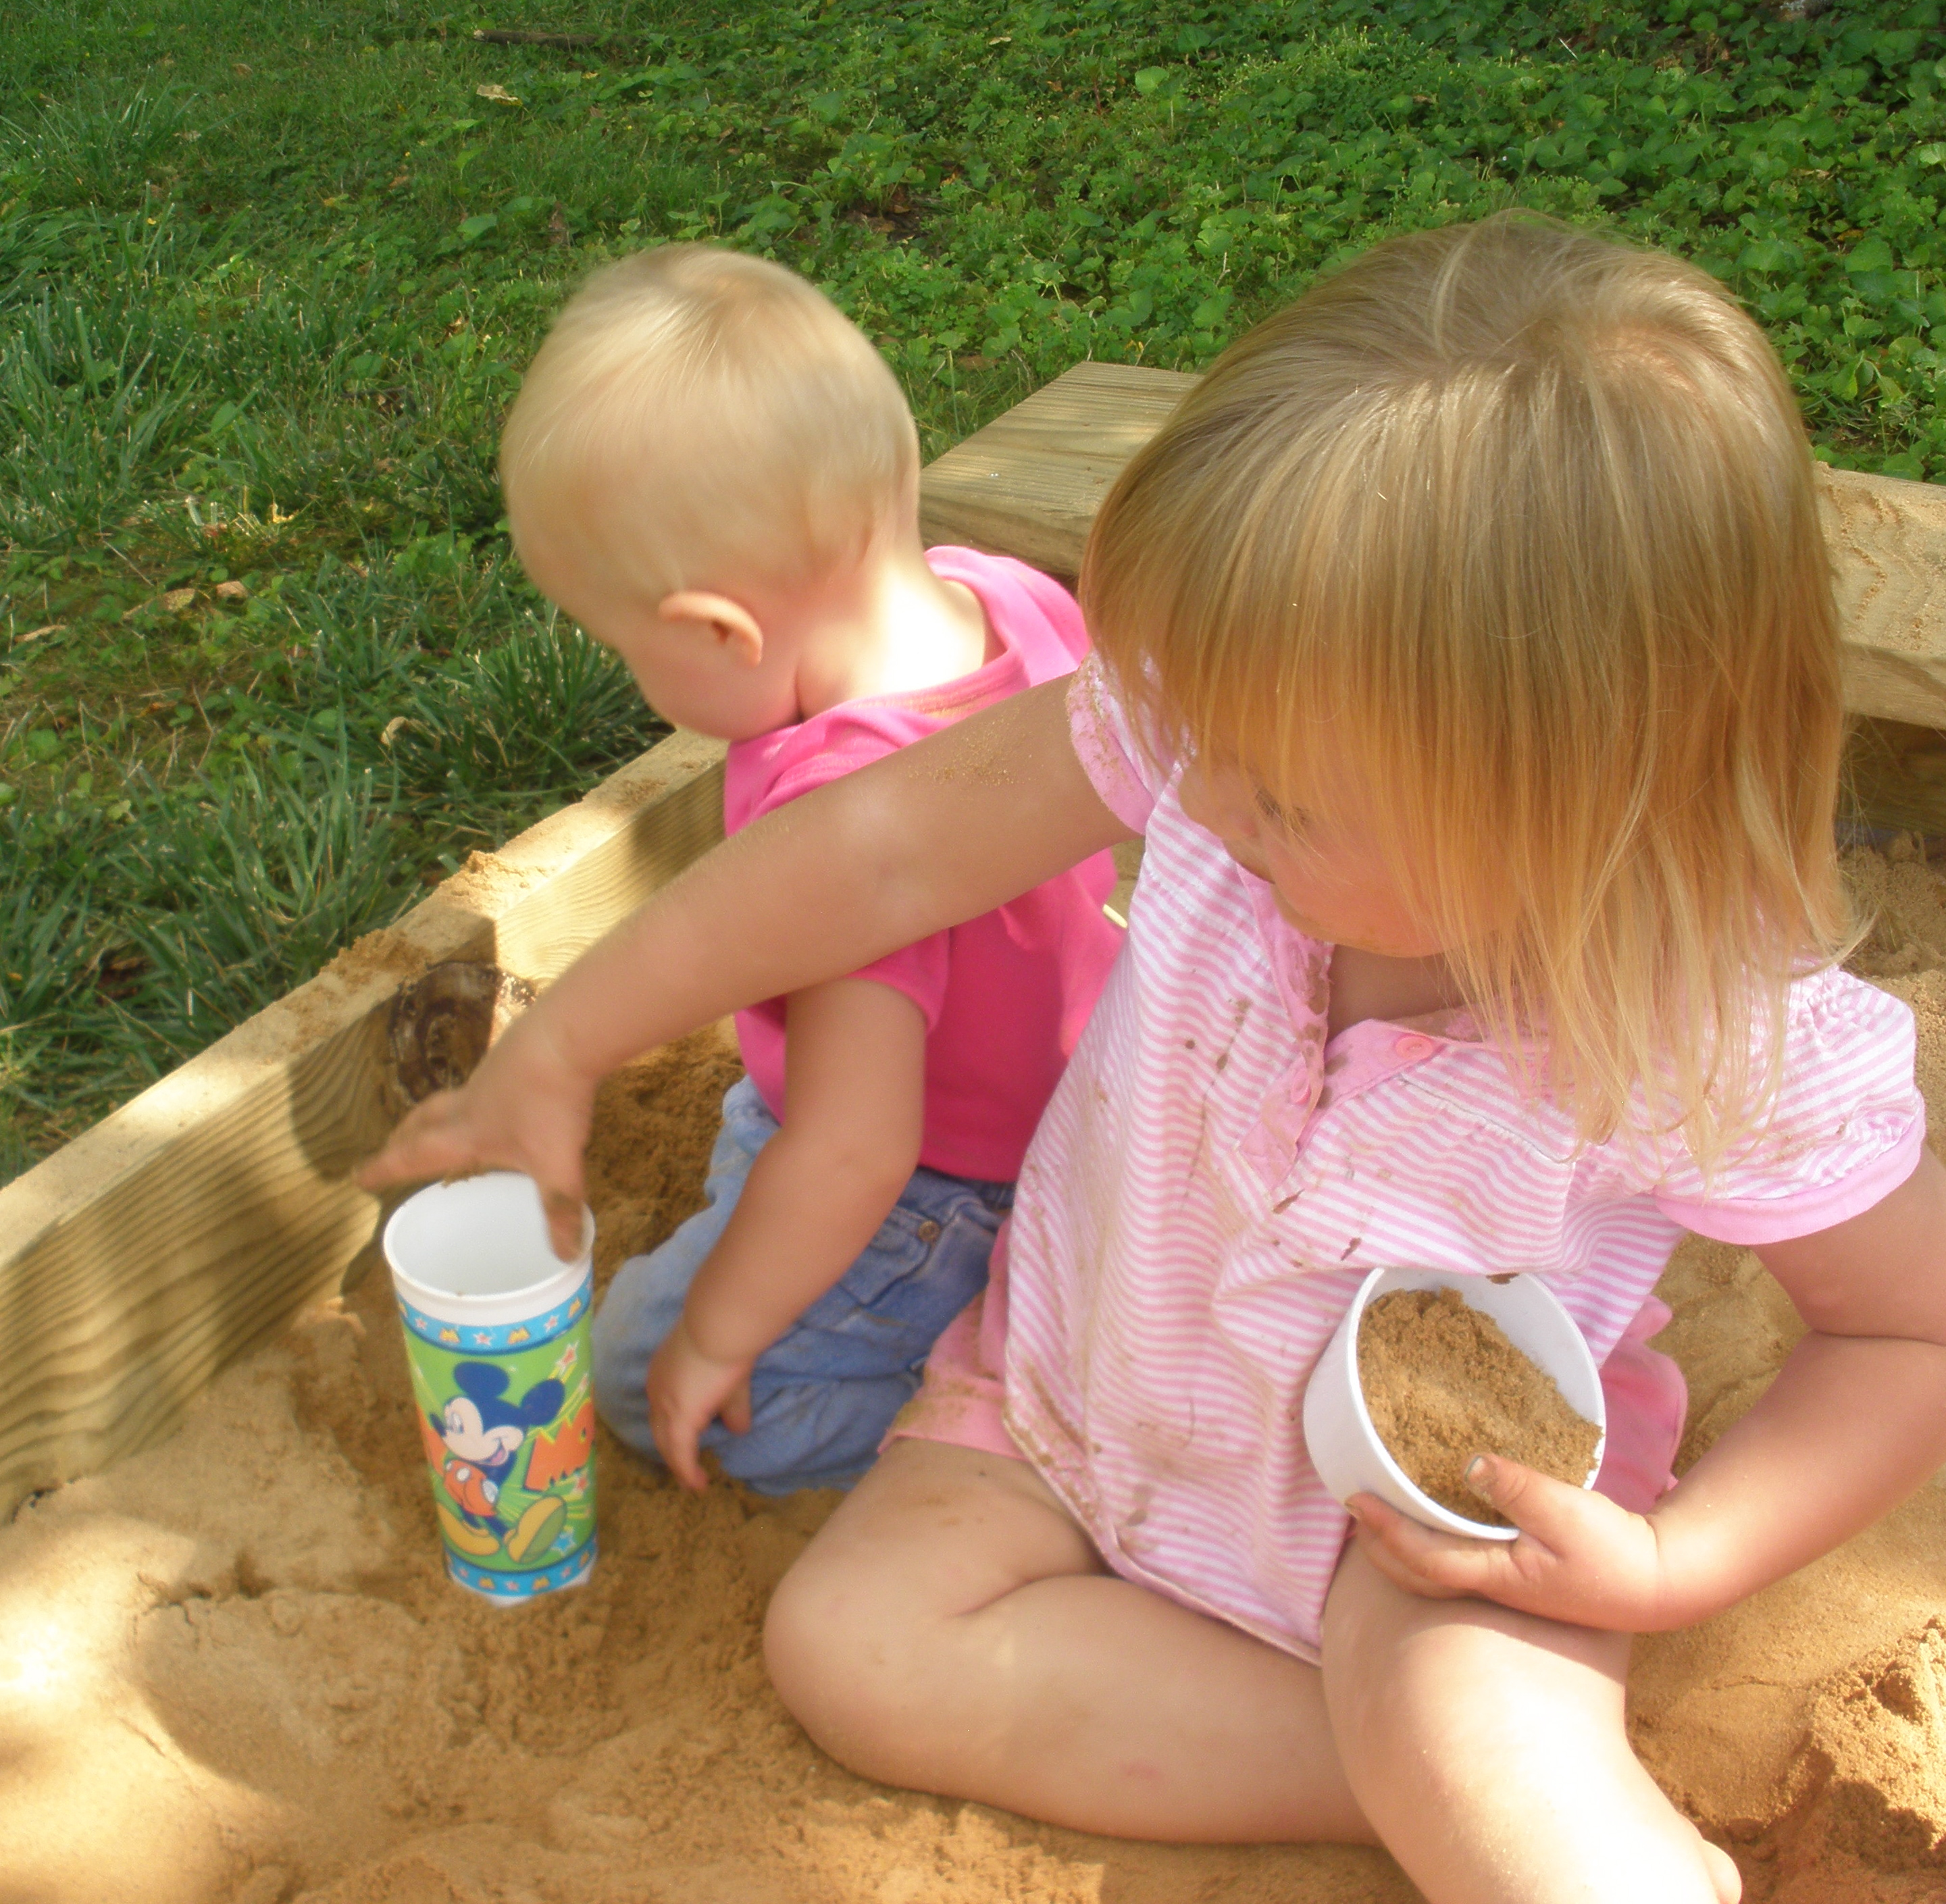 girls in a sandbox 